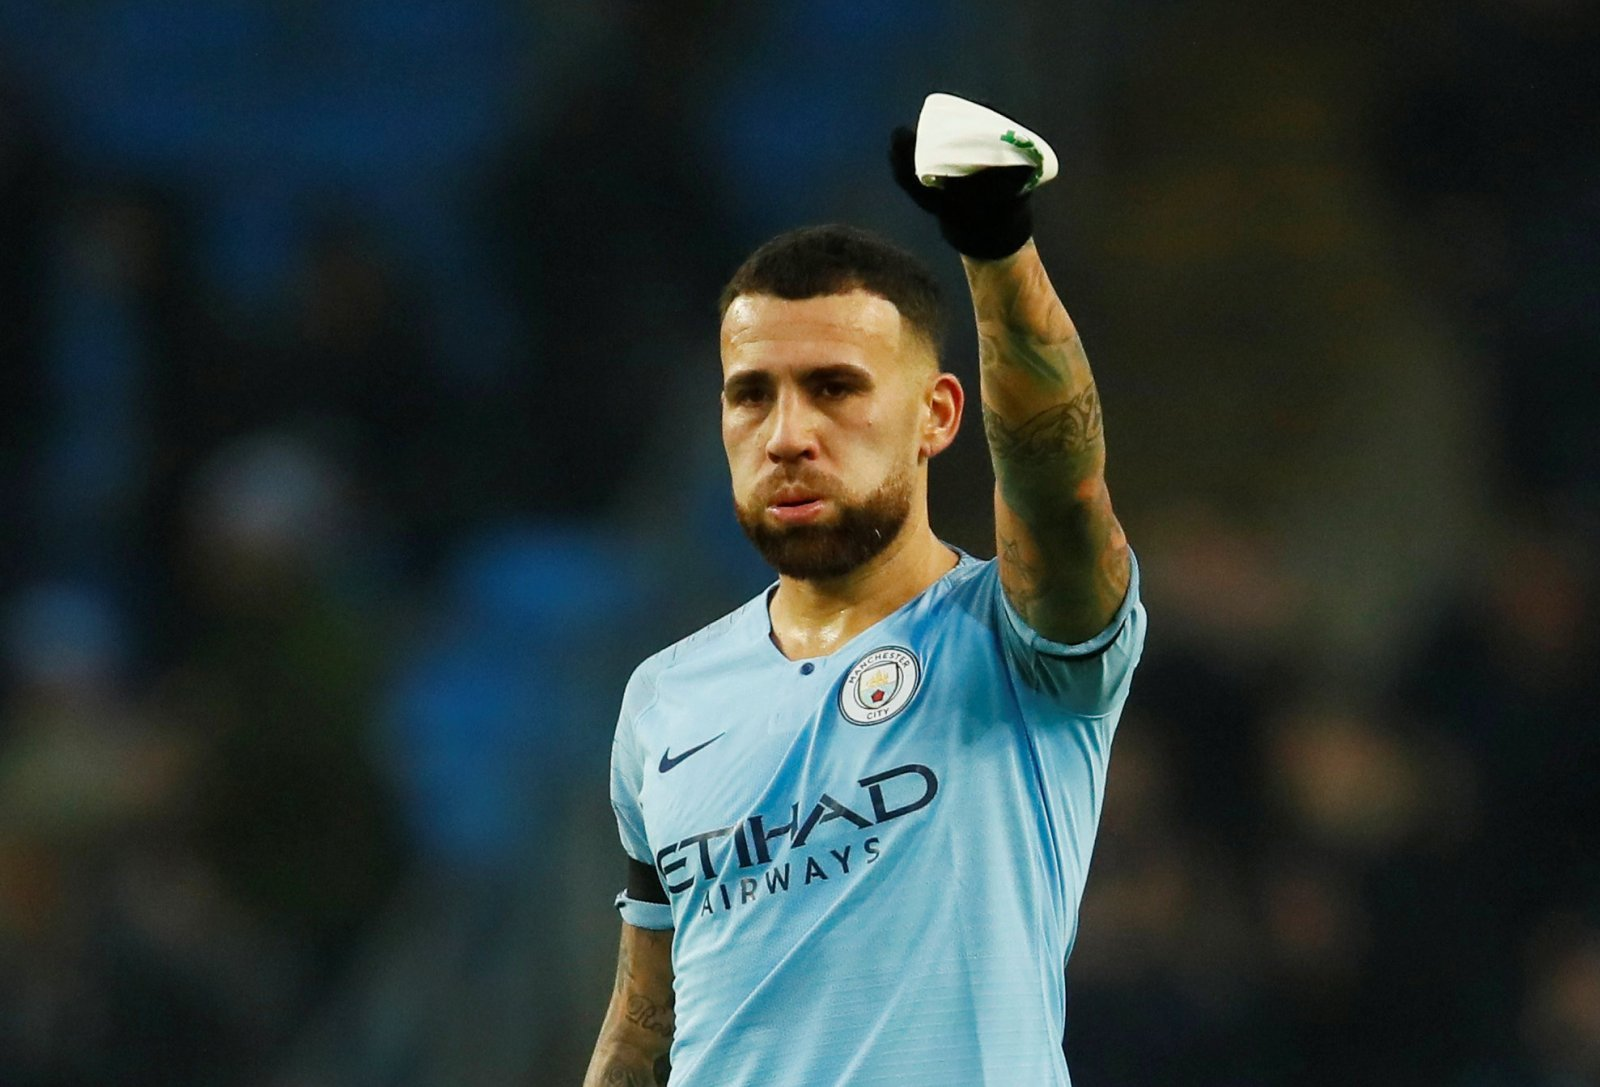 Potential consequences: Manchester City lose Nicolas Otamendi